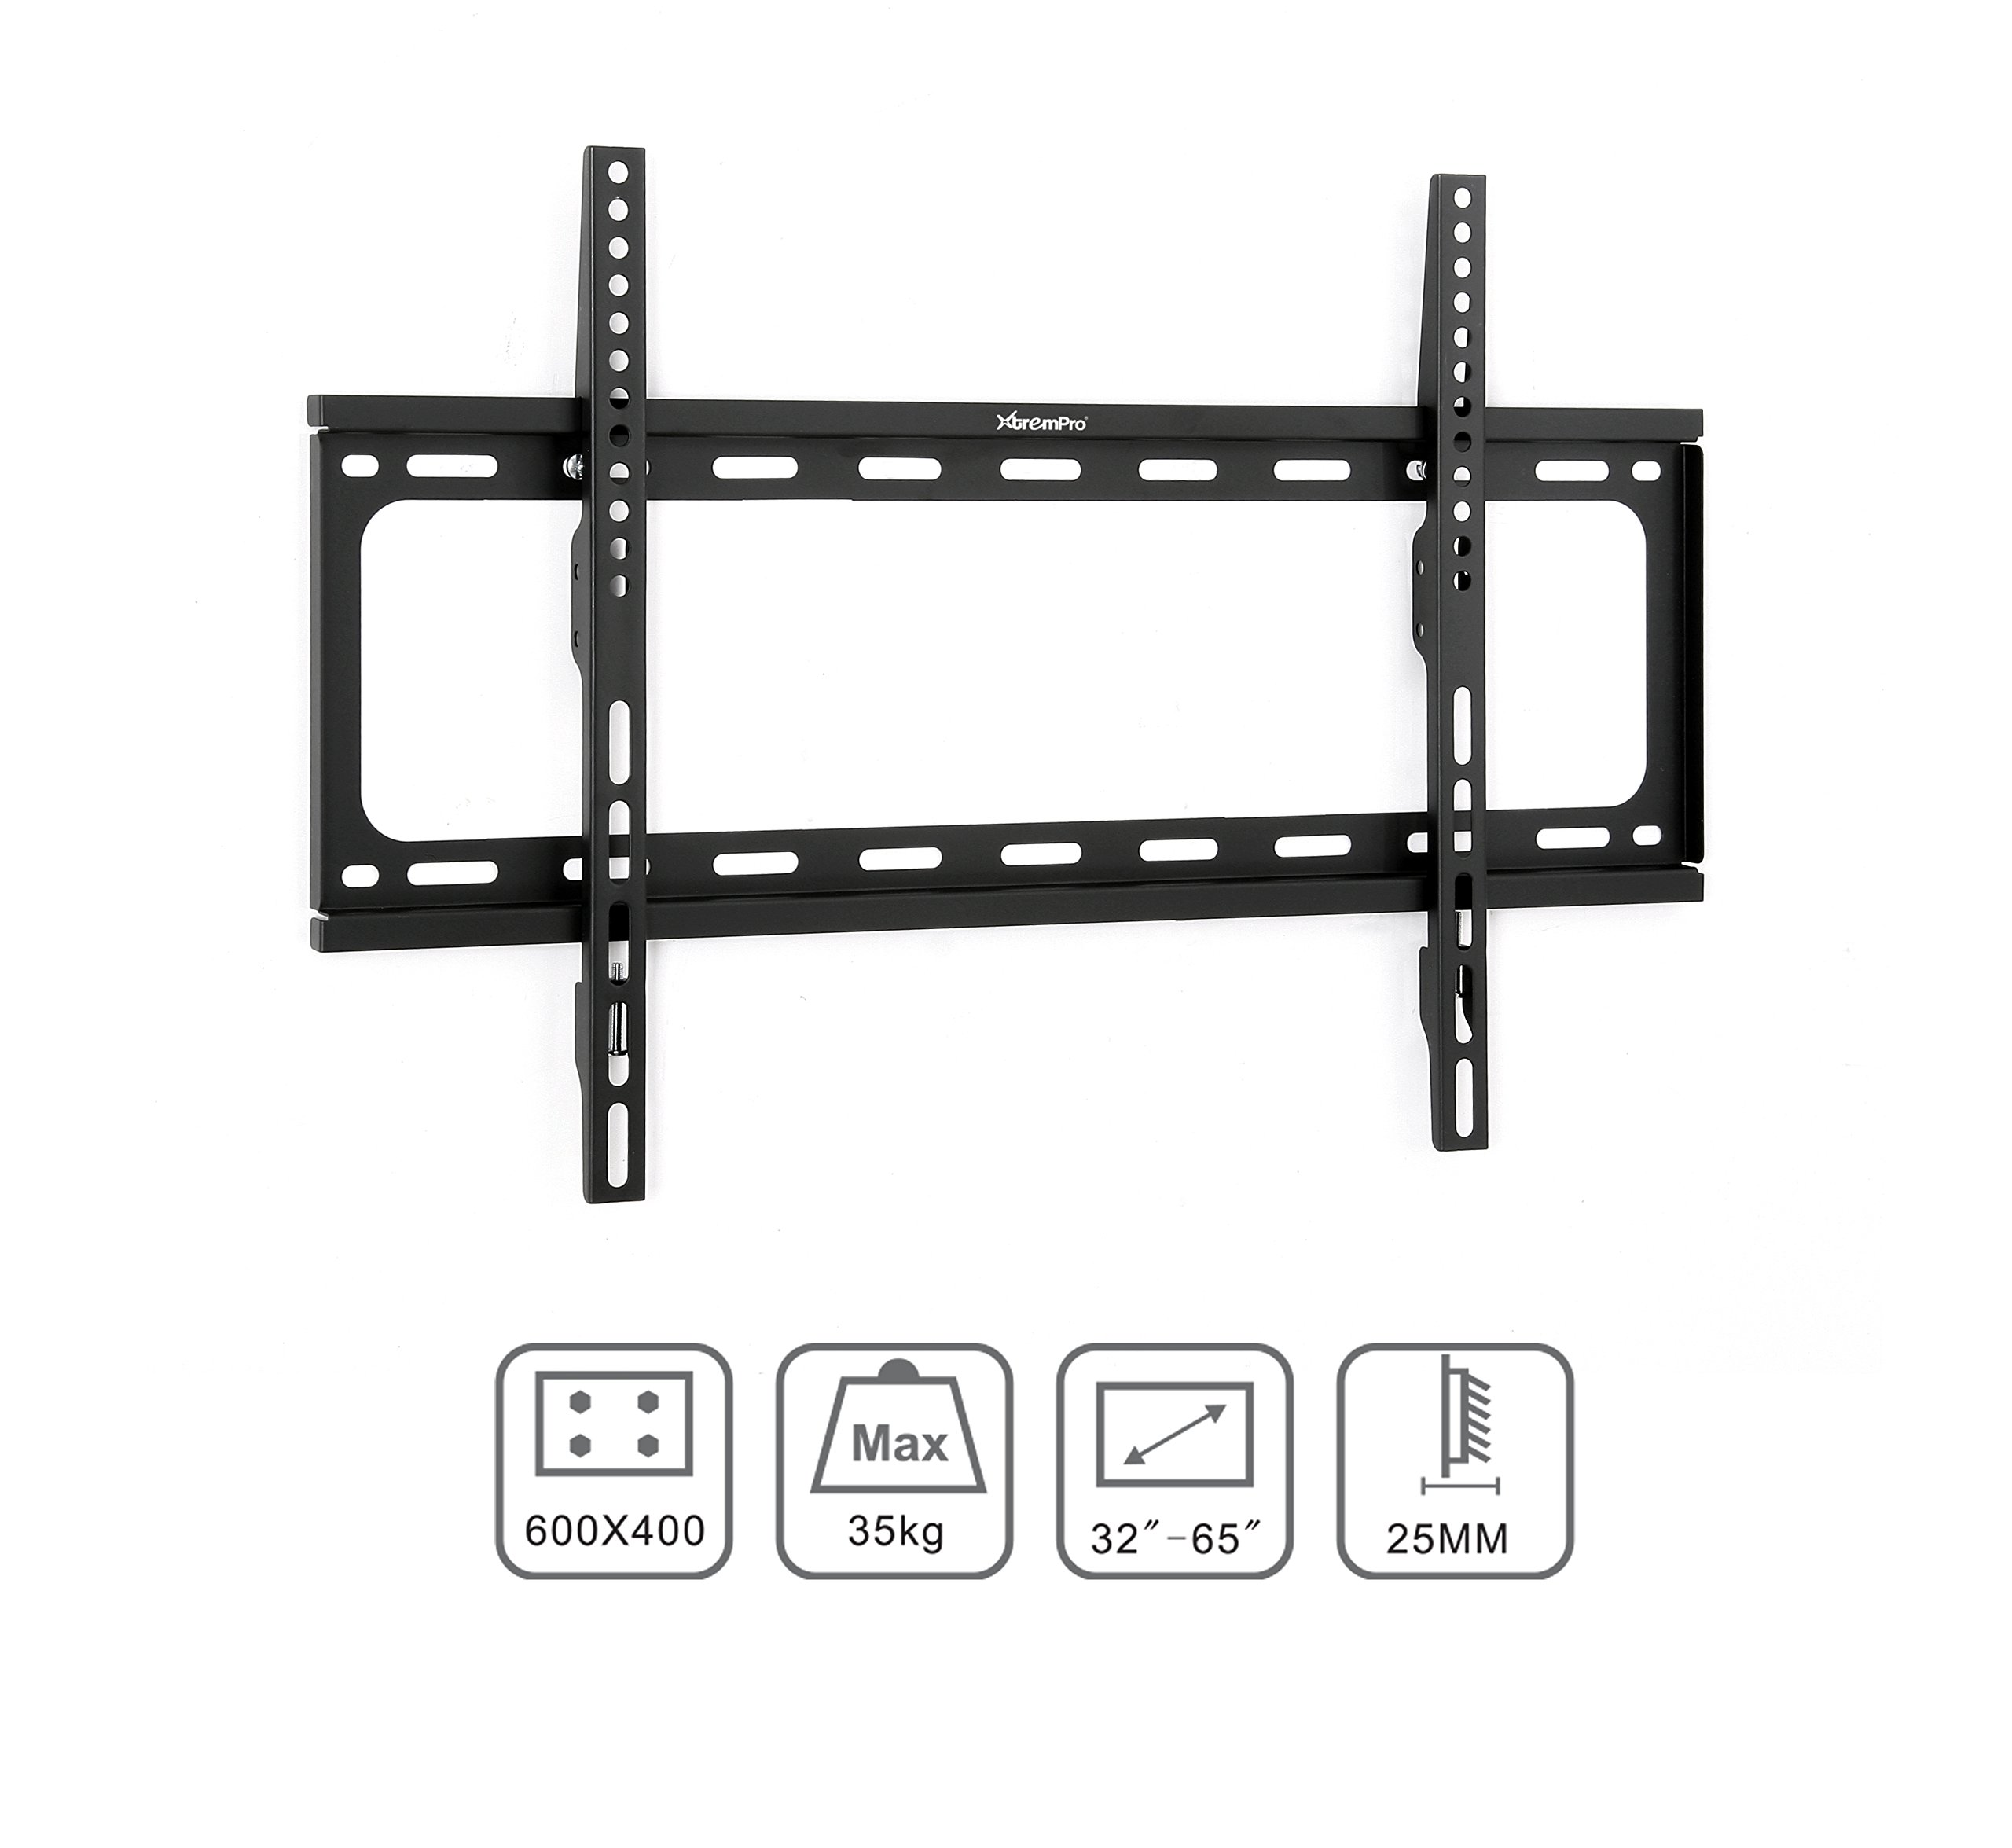 Xtrempro Low-Profile TV Wall Mount 1'' Slim Fixed Bracket w/Magnetic Removable Bubble Level for 32-65 inch LCD, LED, 4K or Plasma TVs VESA up to 600 x 400, 77 lbs Loading Capacity - Black (41033) by XtremPro